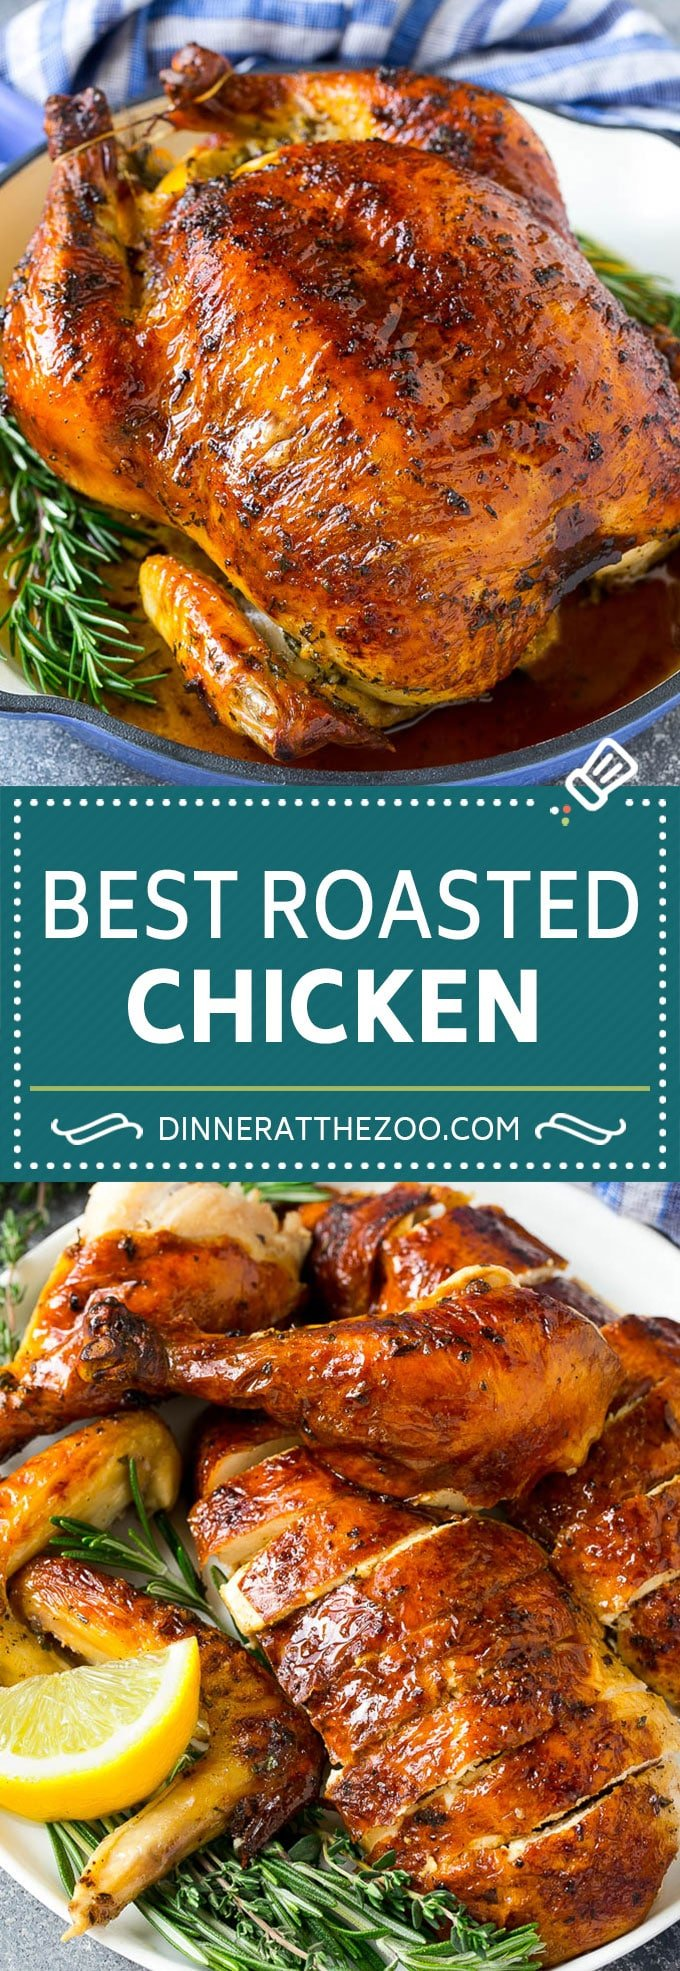 Roasted Chicken Recipe | Whole Roasted Chicken | Roast Chicken #chicken #dinner #lowcarb #keto #dinneratthezoo